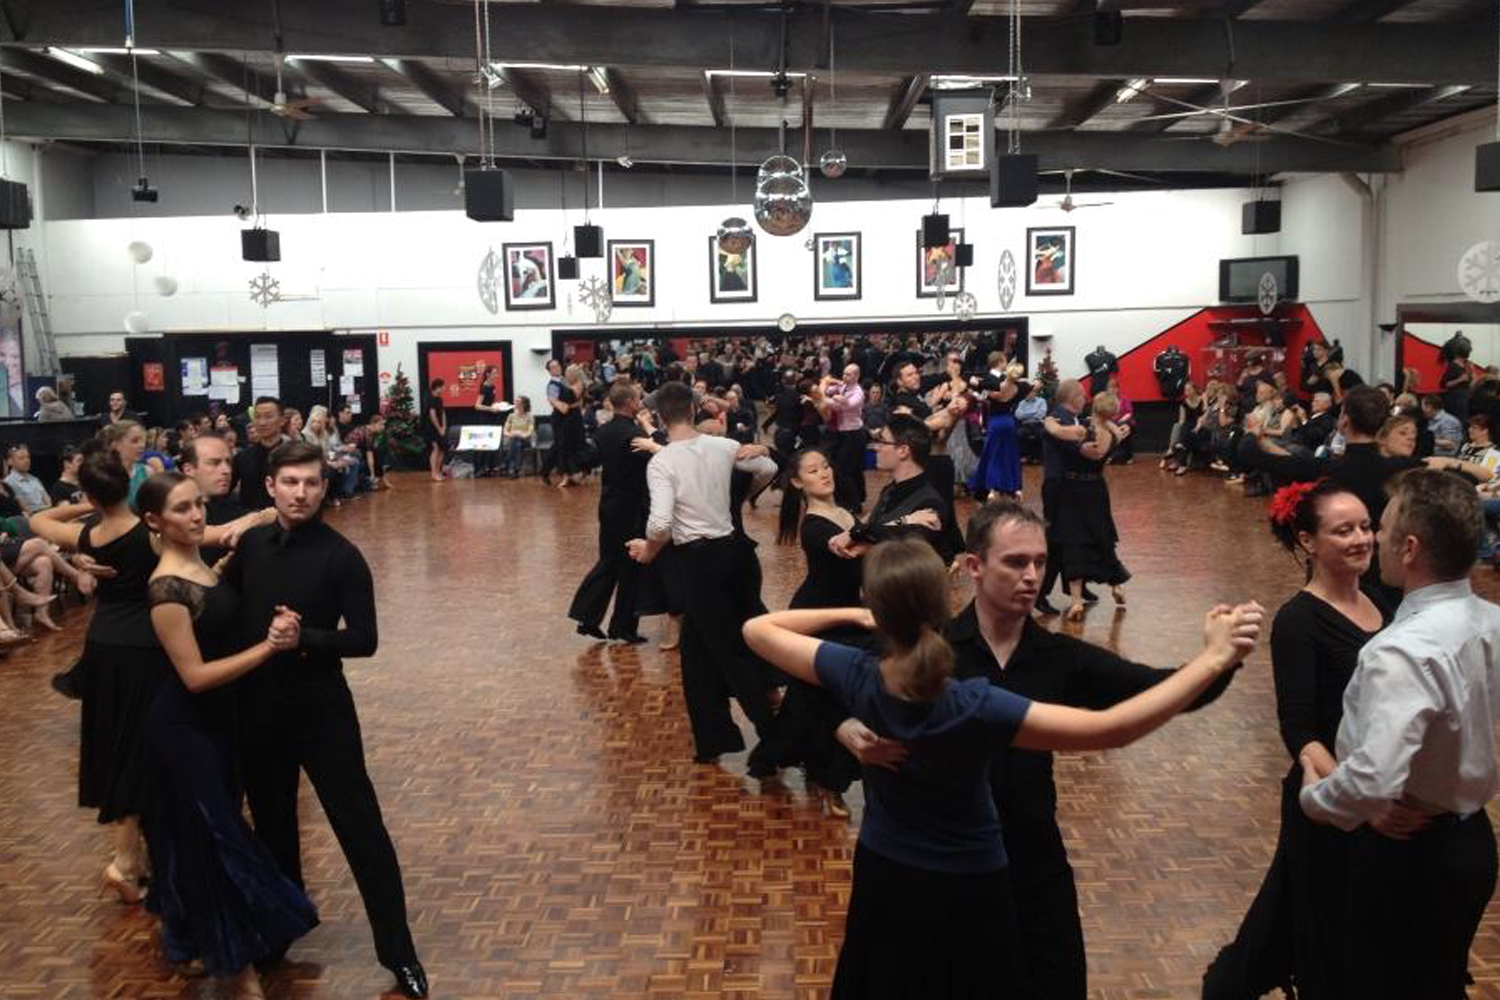 MarShere Ferntree Gully Adult Social classes